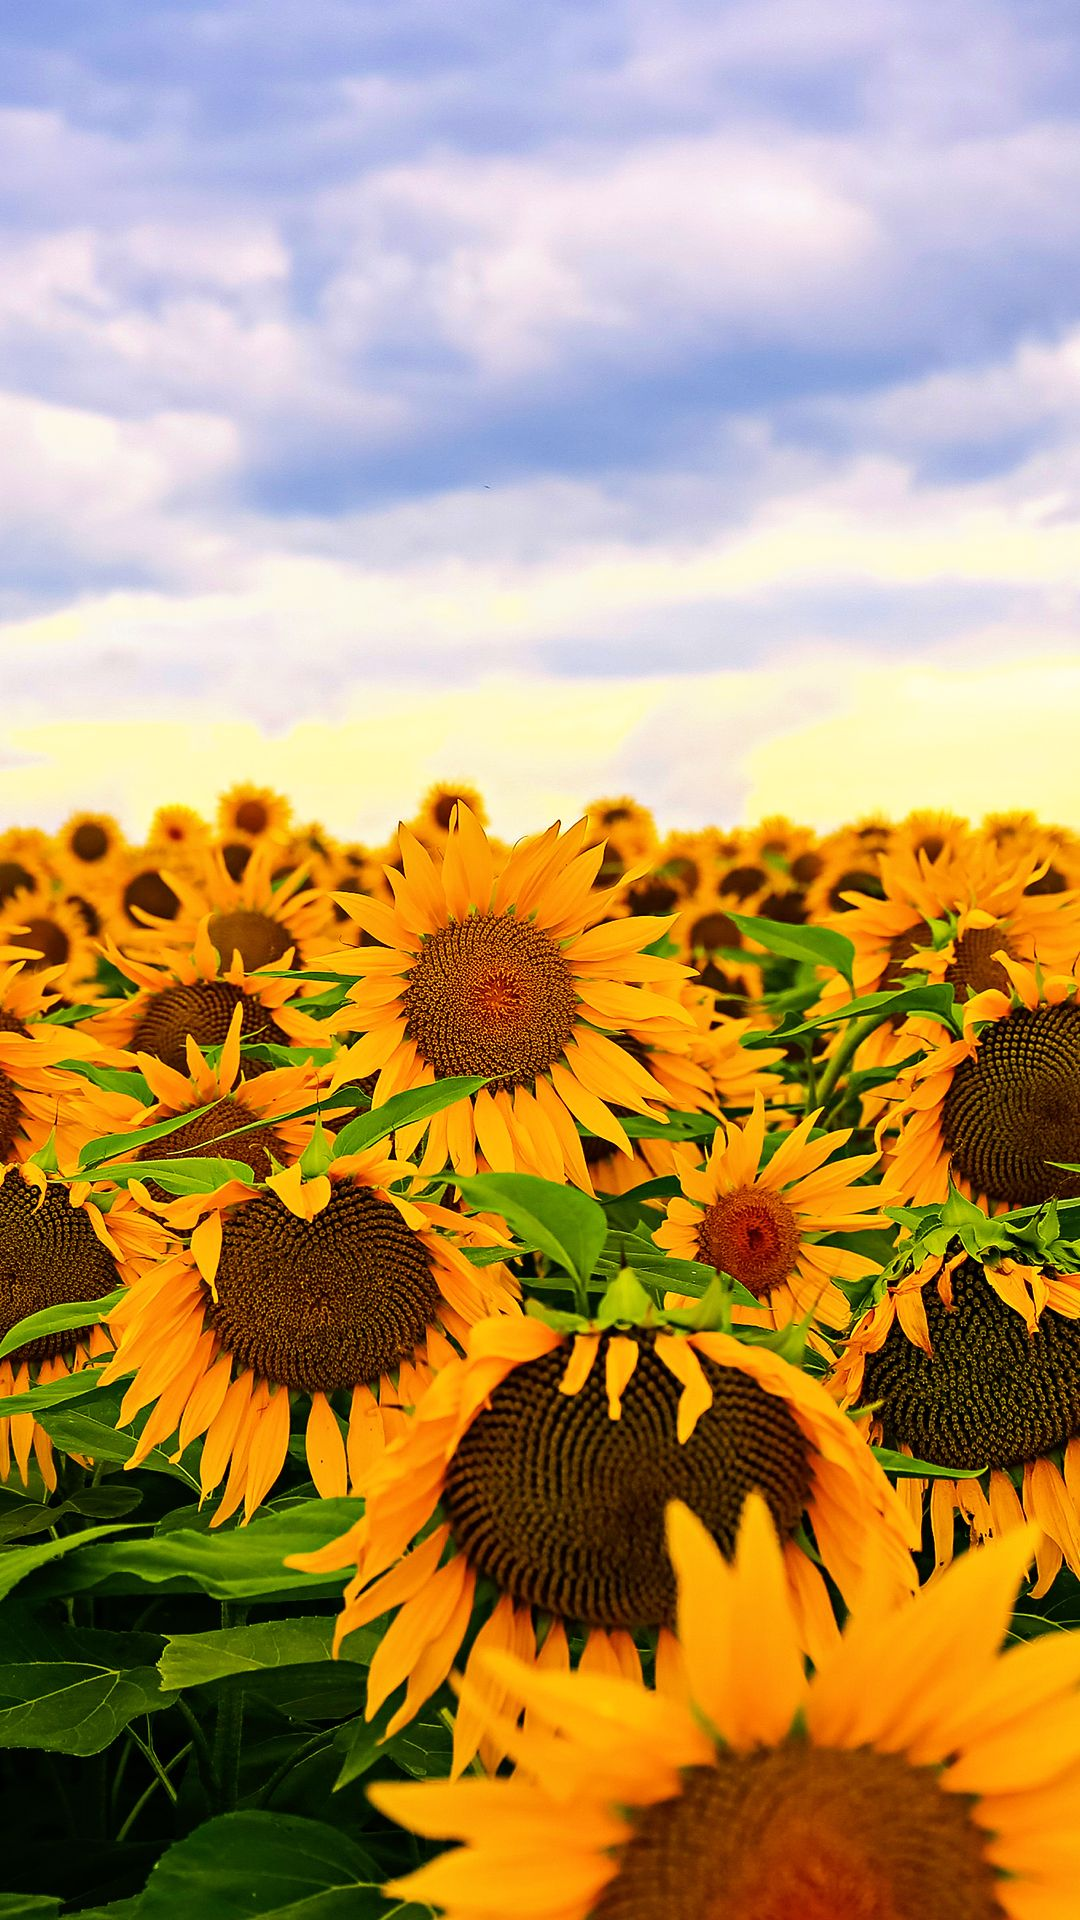 Sunflower Iphone Wallpapers Top Free Sunflower Iphone Backgrounds Wallpaperaccess